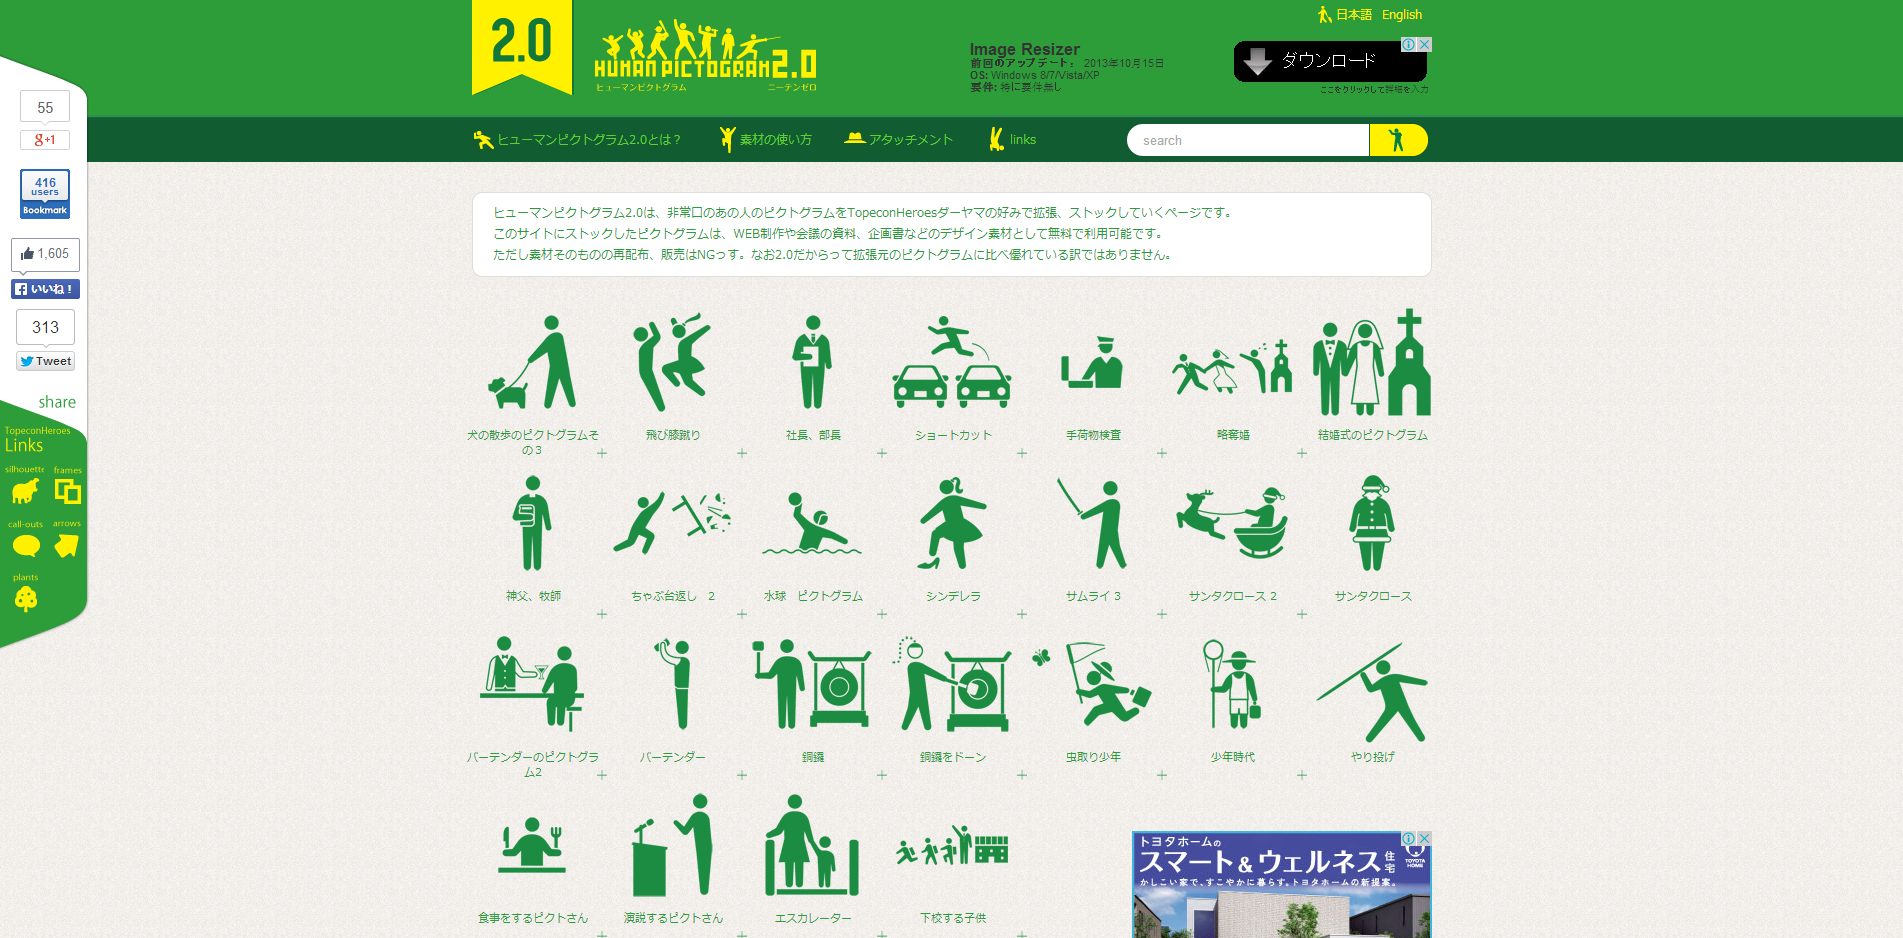 5human pictogram 2.0  無料人物 ピクトグラム素材 2.0